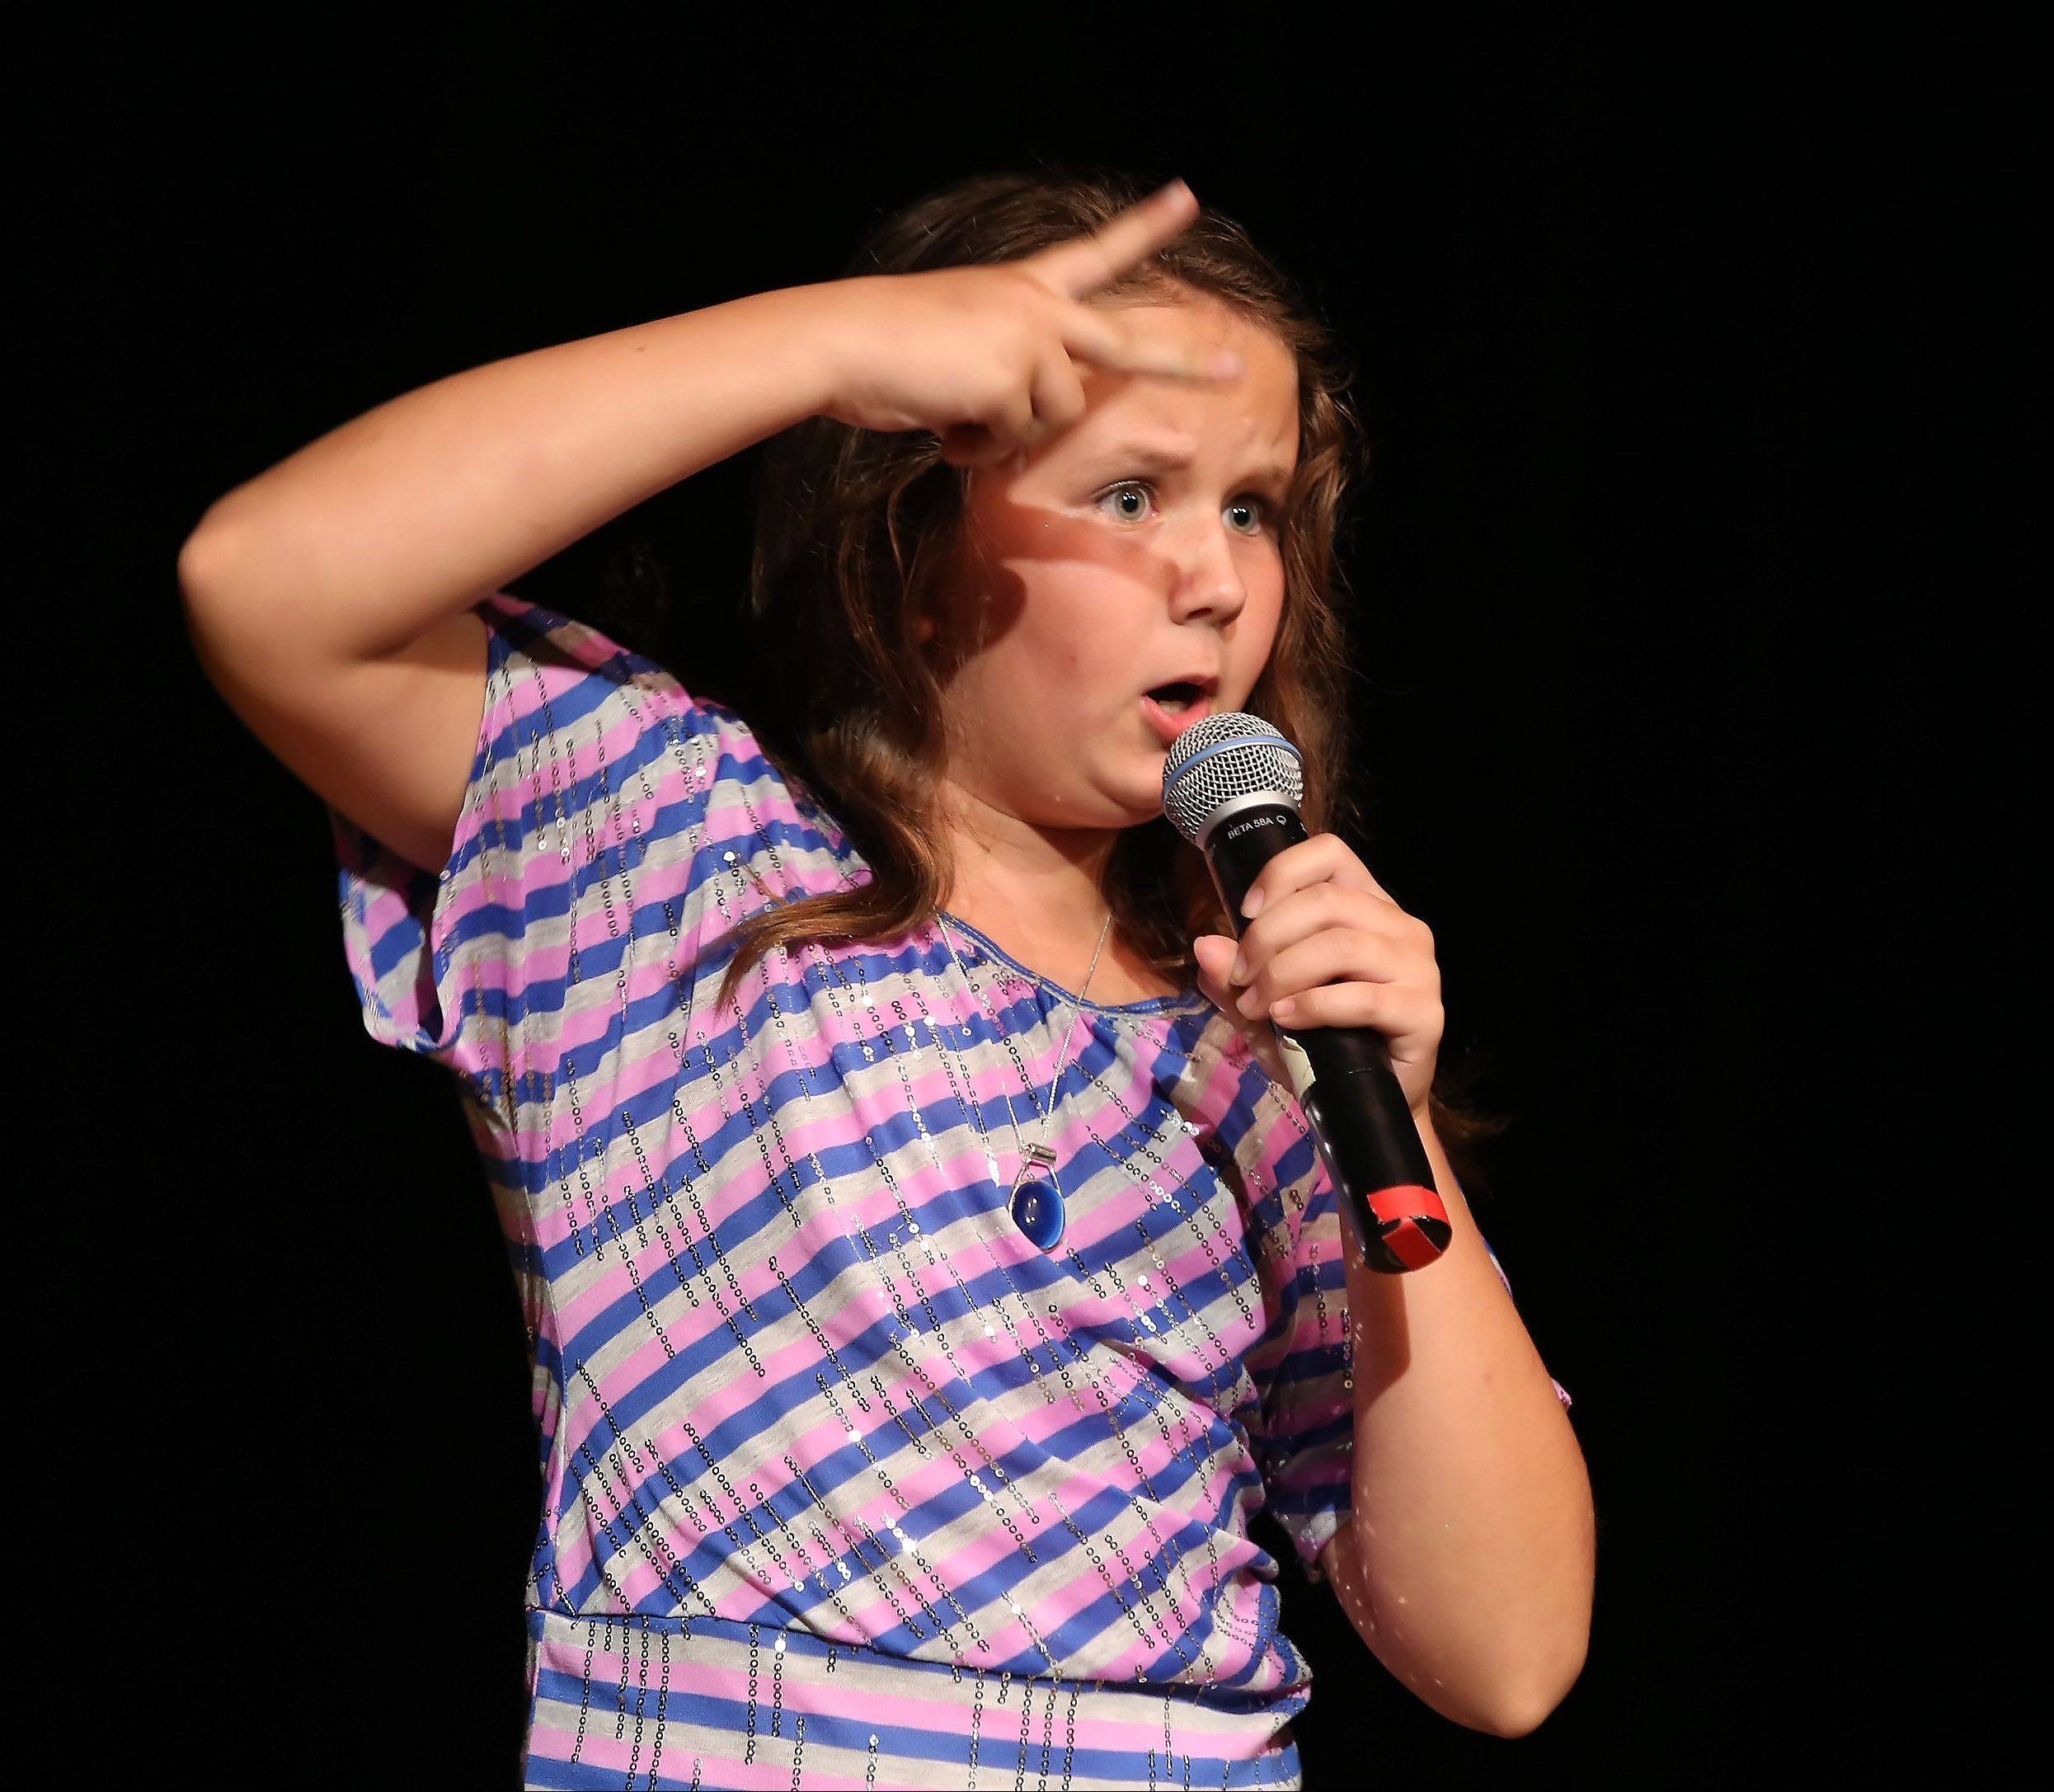 Mary Hilbrink of Fox River Grove sings and dances during Suburban Chicago's Got Talent competition Sunday night at the Metropolis Performing Arts Centre in Arlington Heights. The summer long talent contest is presented by the Daily Herald and sponsored by the Arlington Heights Chamber of Commerce.